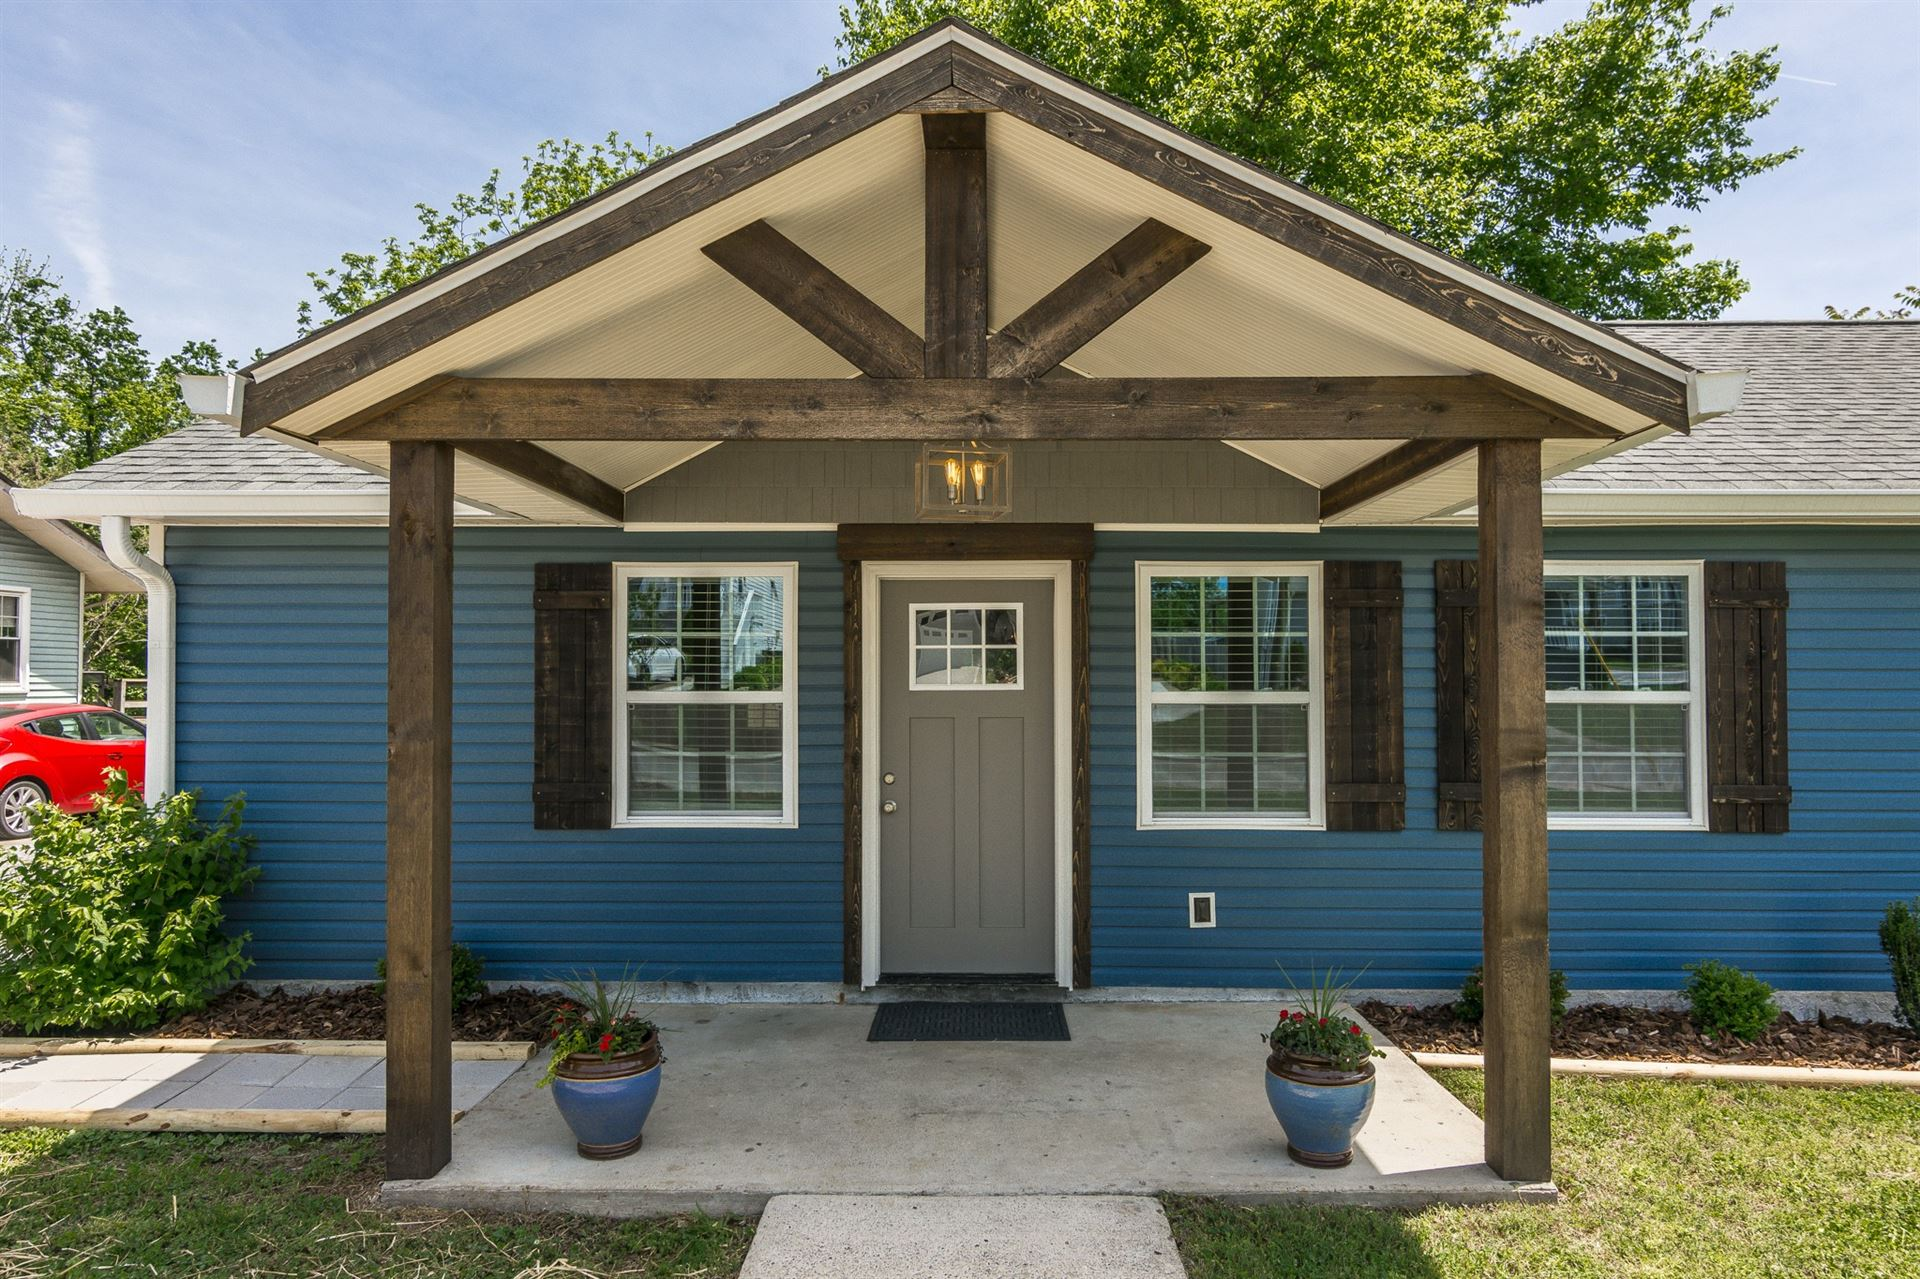 2149 Rock City St, Nashville, TN 37216 - MLS#: 2250610